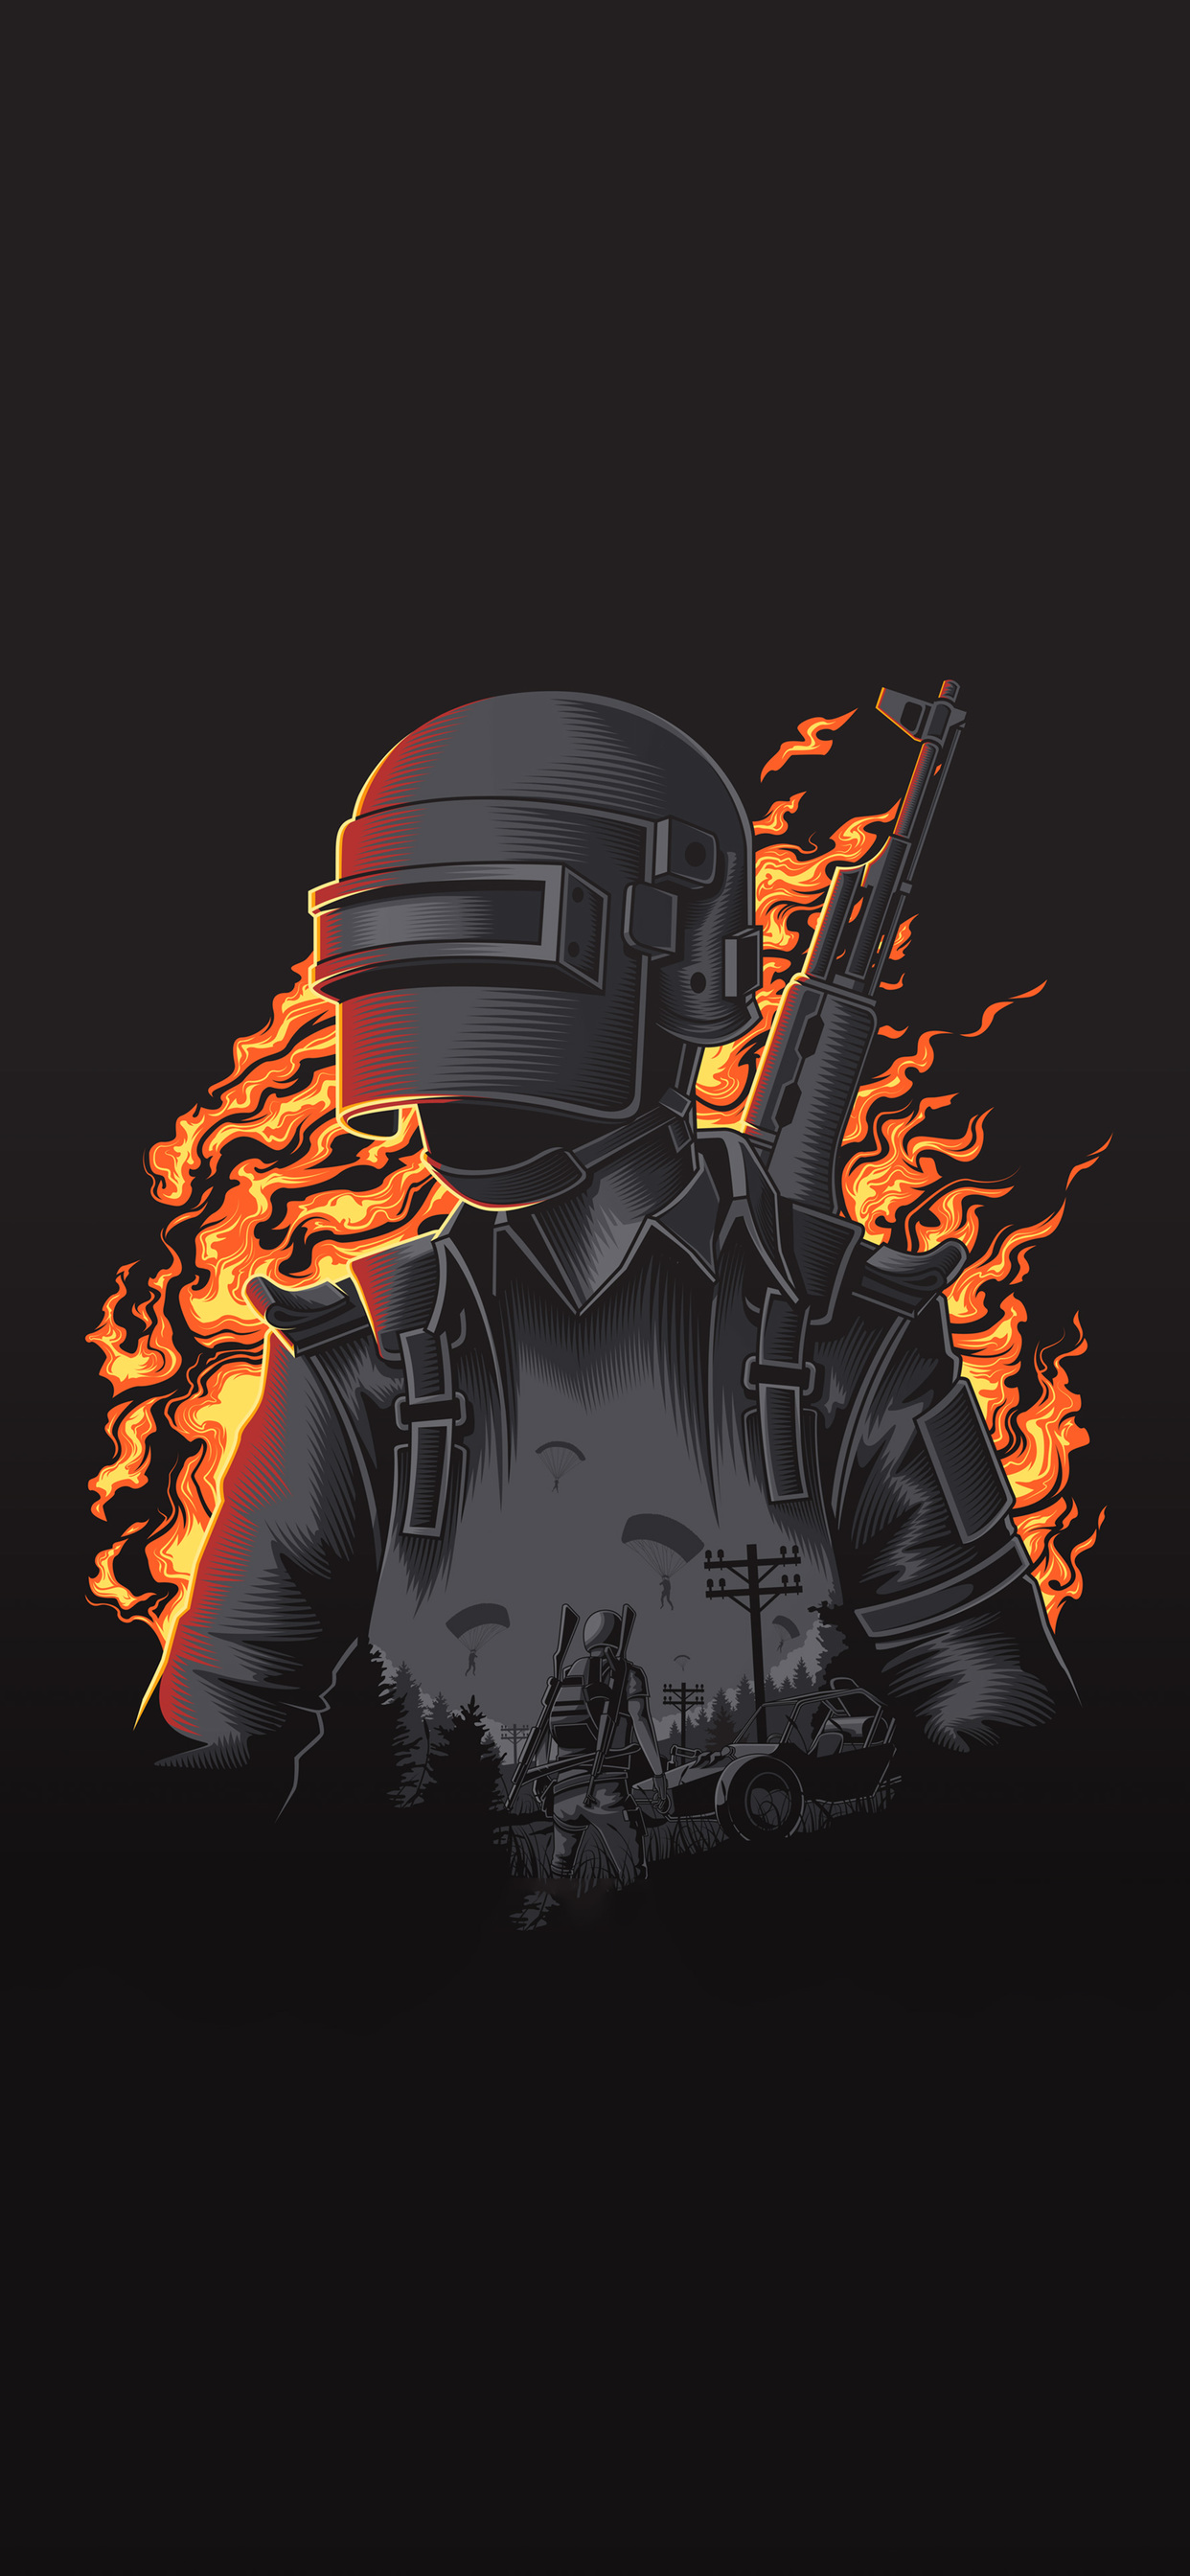 pubg illustration 4k 42 1242x2688 hdqwalls.com  1